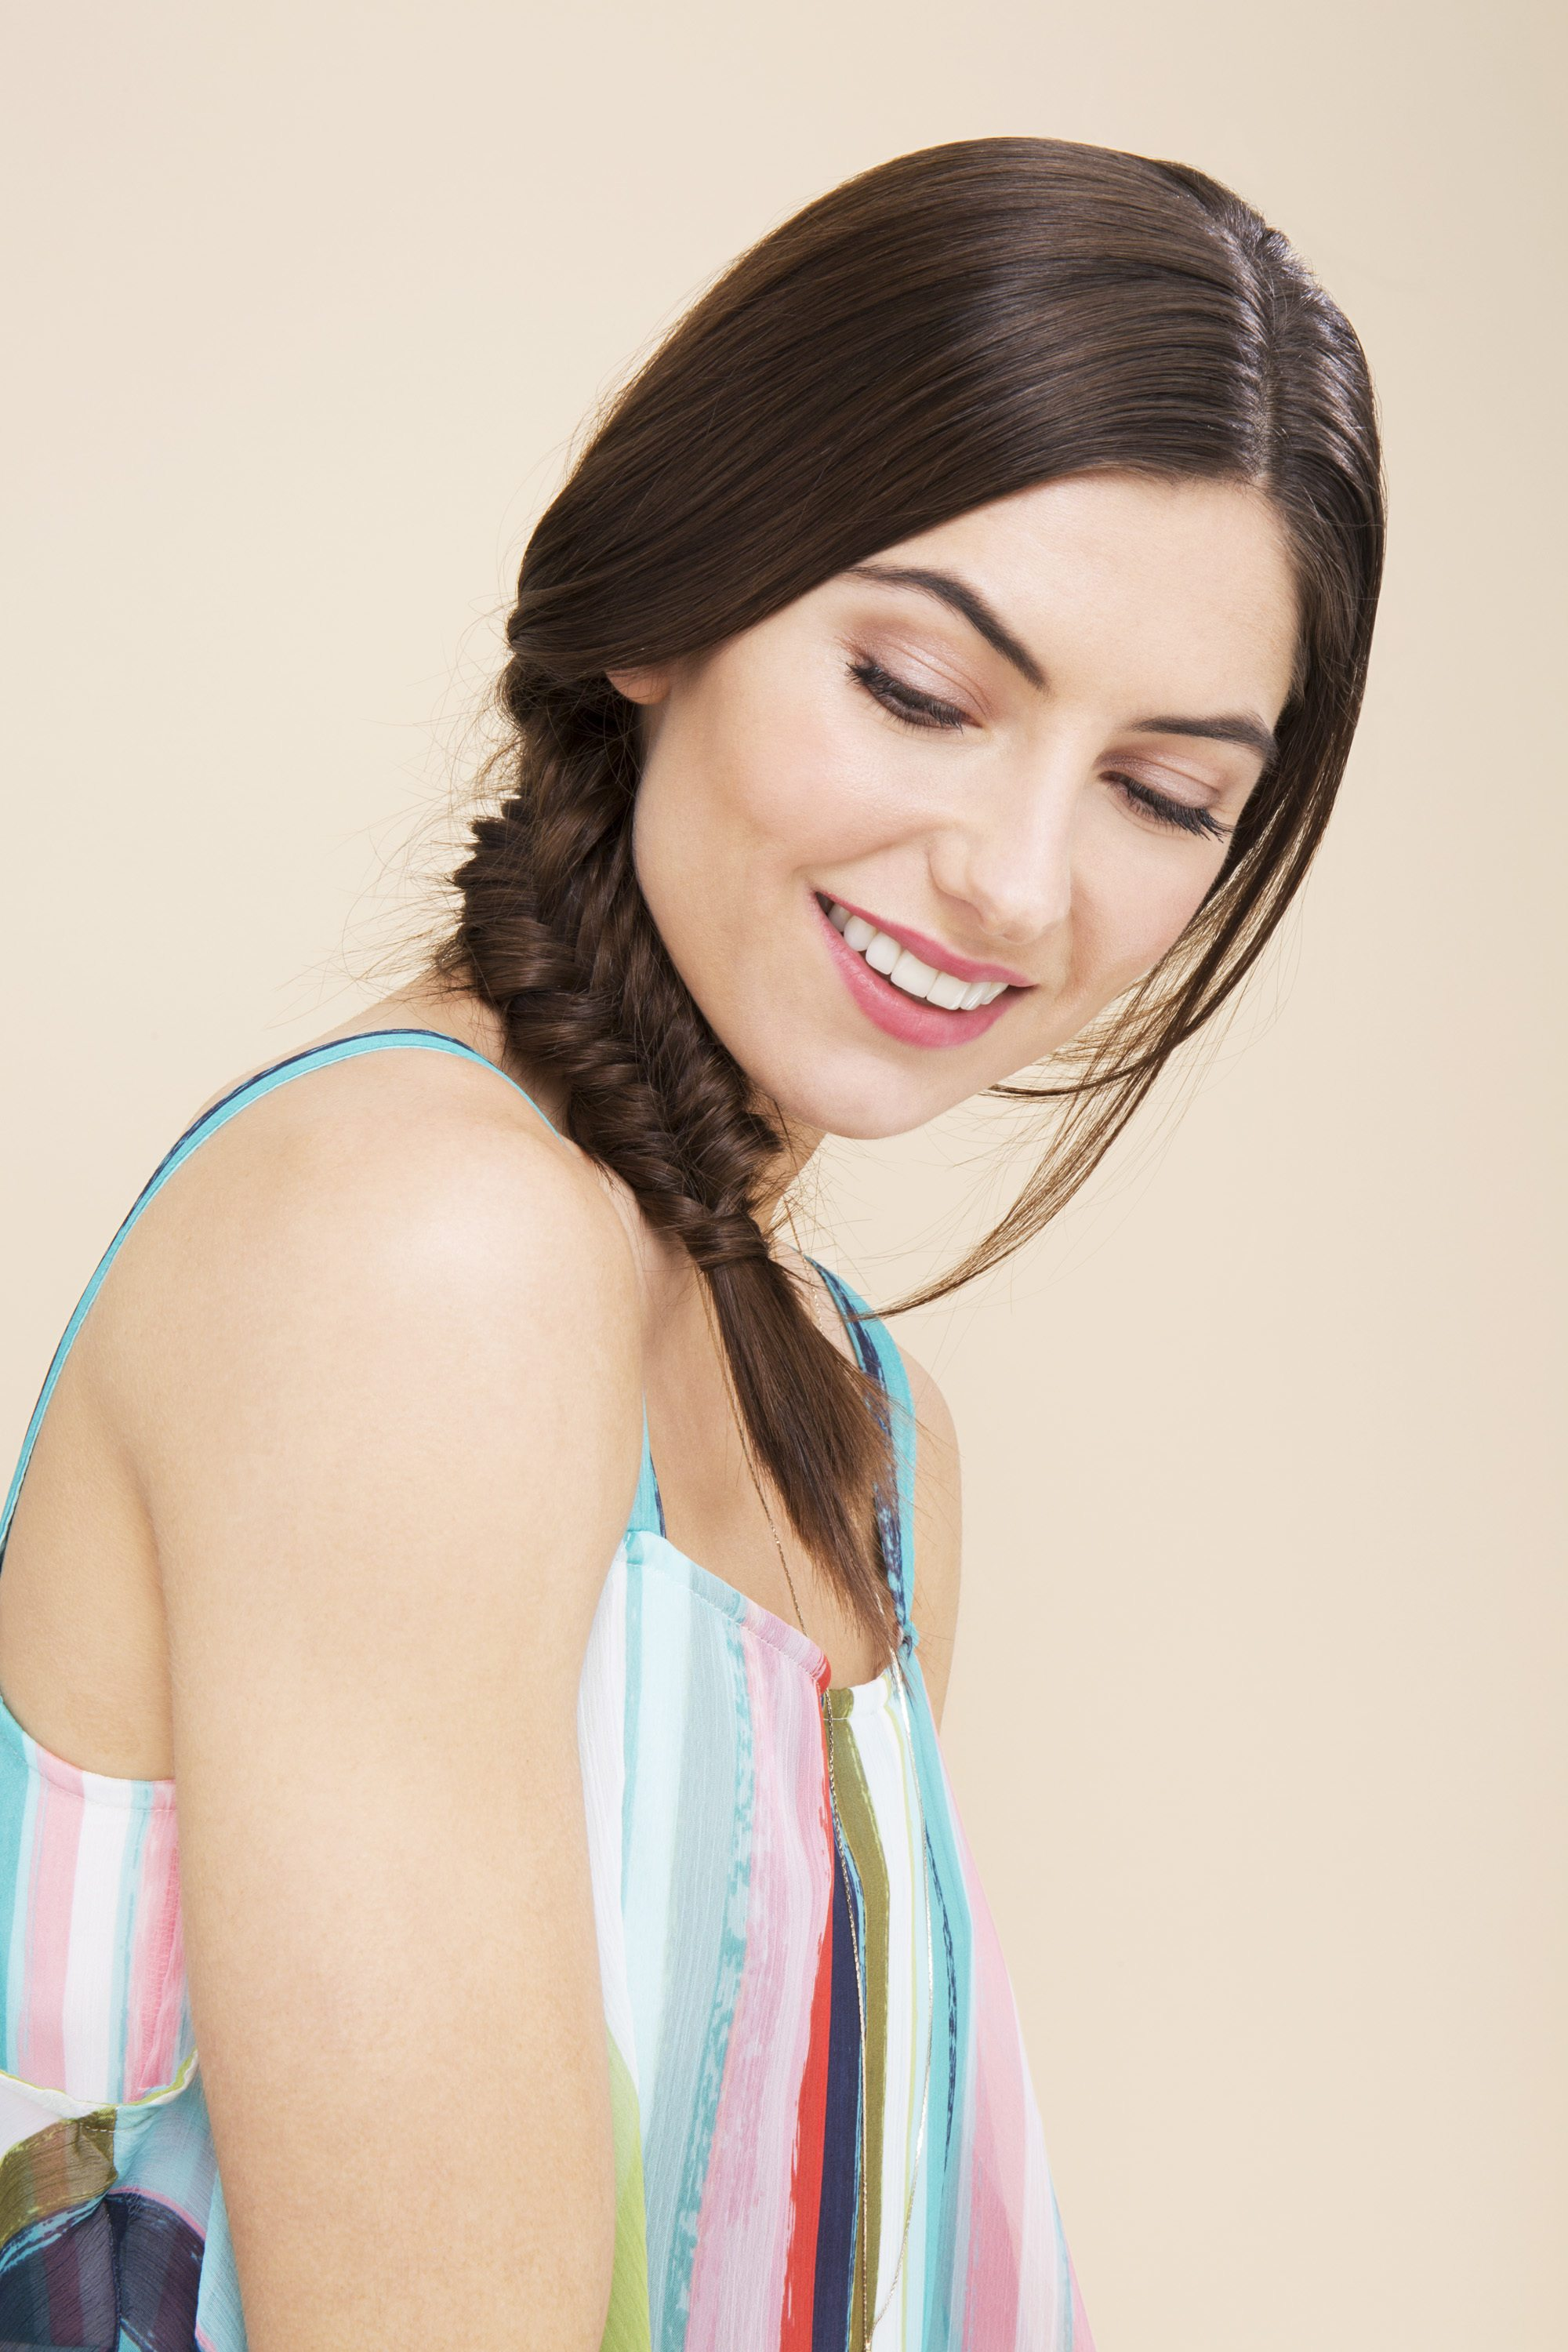 Brunette woman with a side fishtail braid